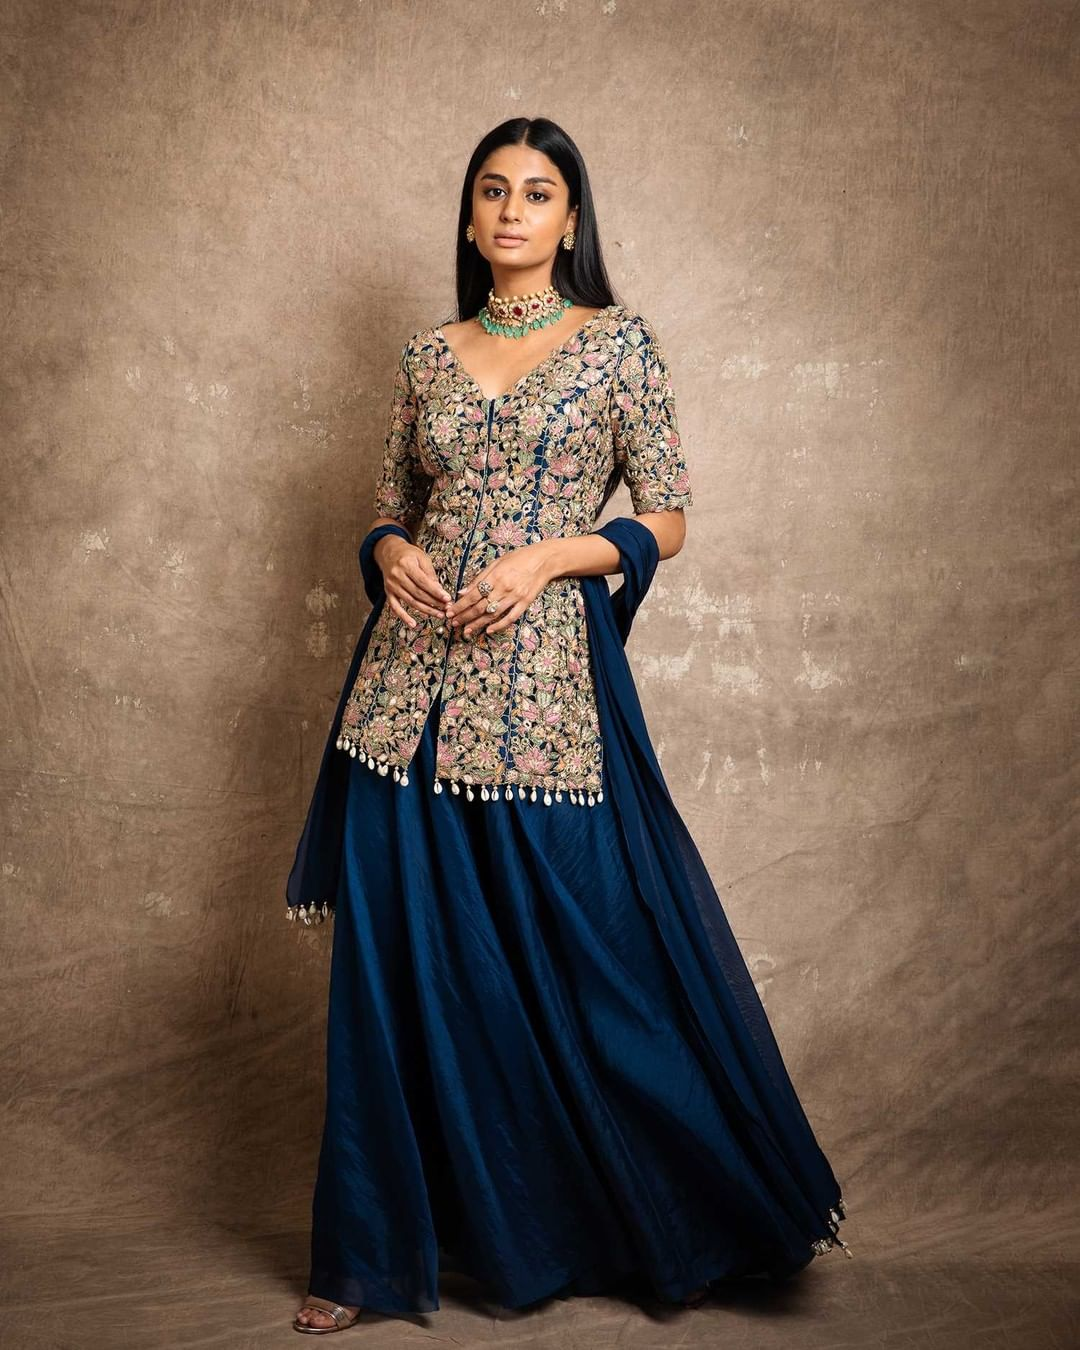 Intricate florals and royal affair of drapes for this festive season!  Here's a look of Blue tiered sharara with fan flower embroidered kurta with cowrie shell detailing and chiffon dupatta.  For further enquiries please connect with team on +91 7506633202 via call or WhatsApp. . 2021-08-04